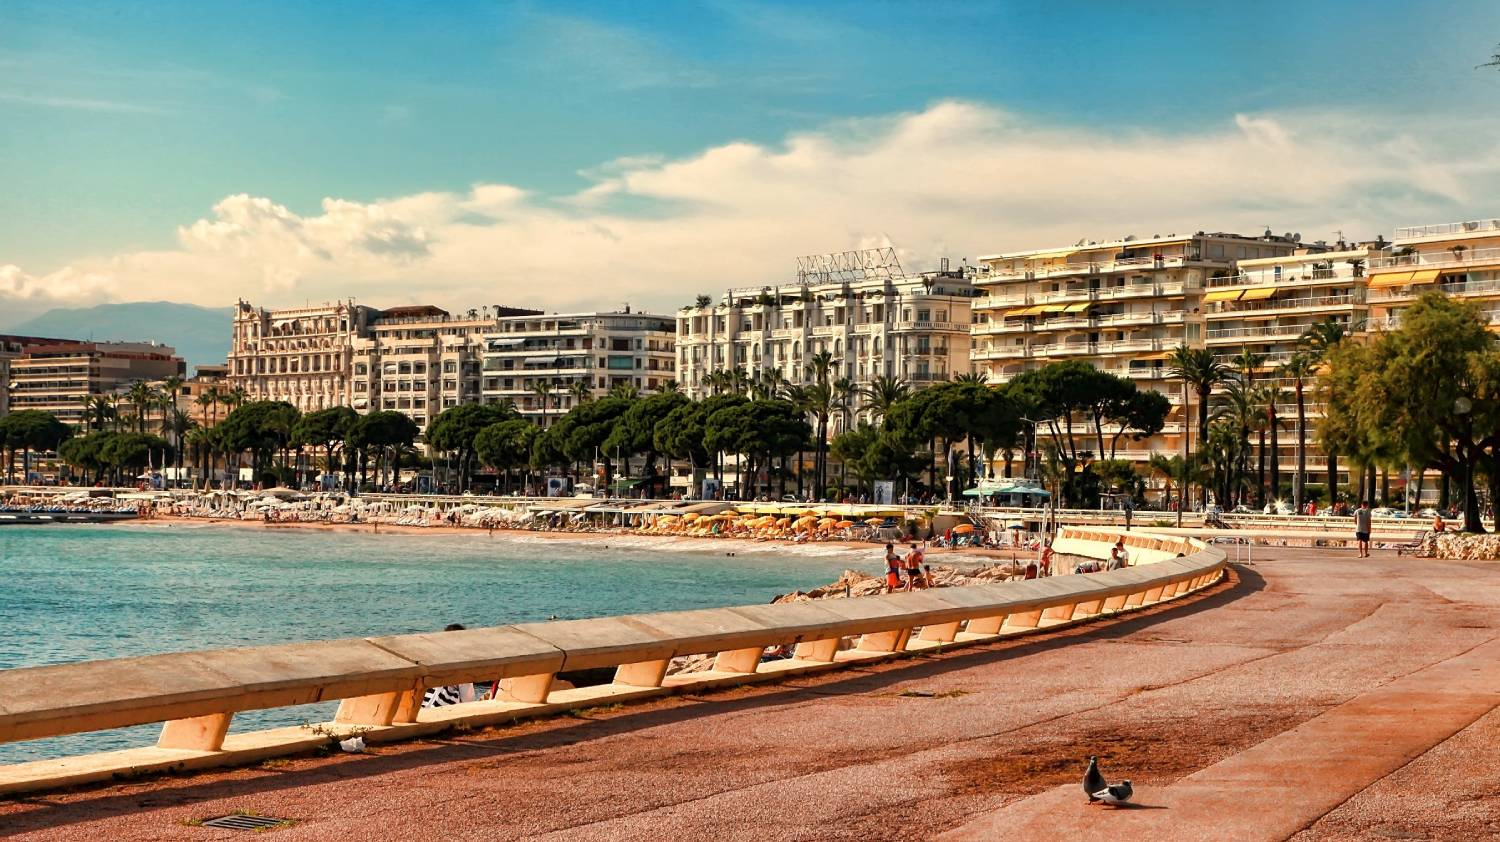 Cannes - The Best Places To Visit In France